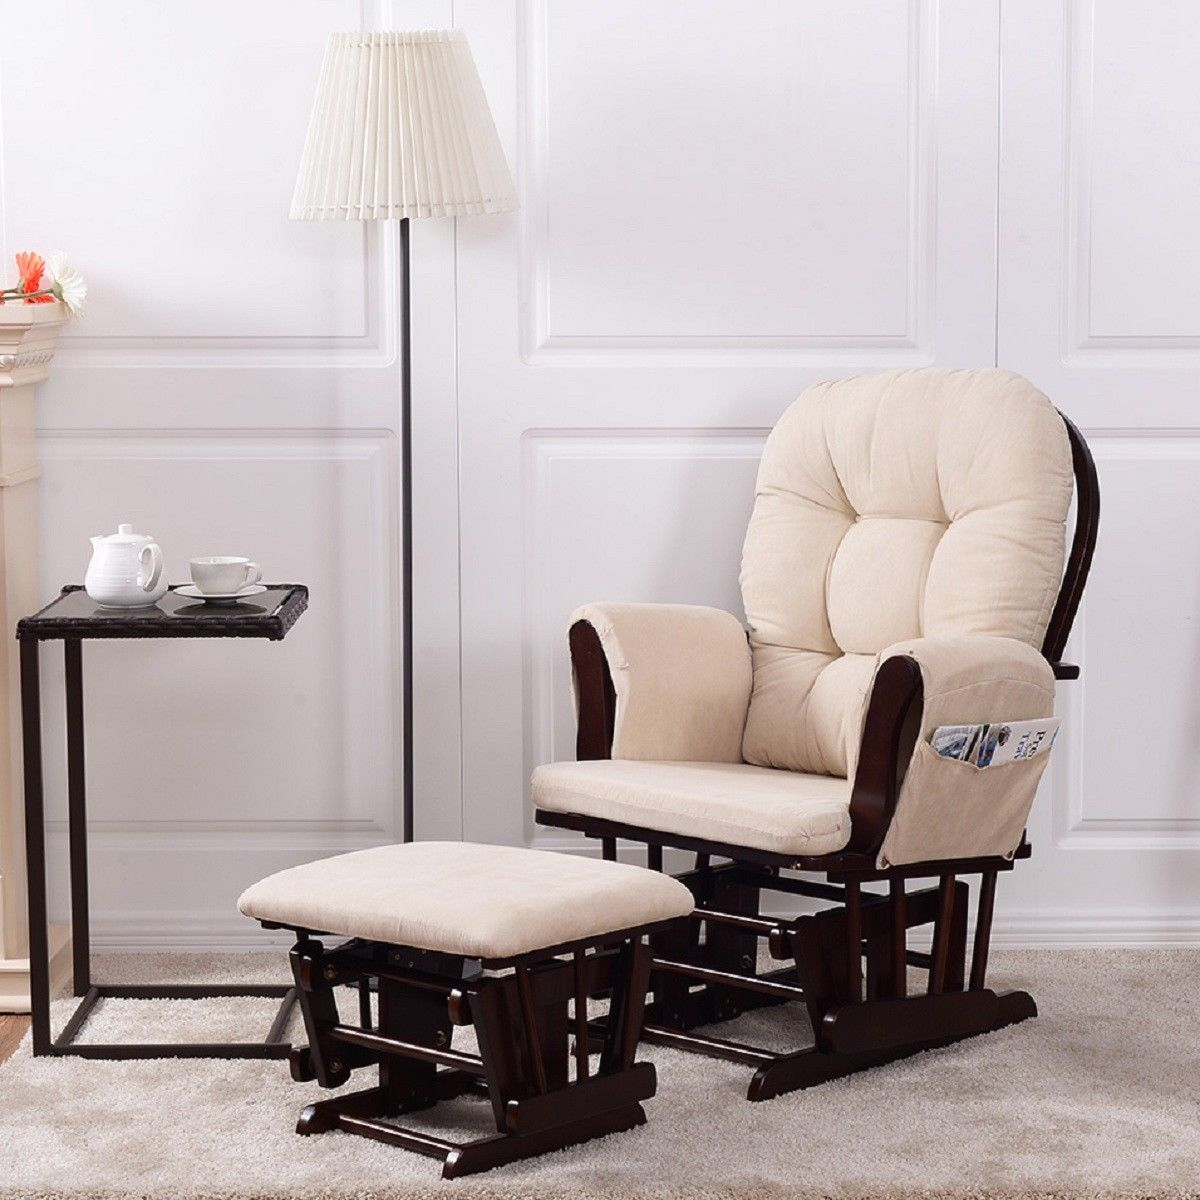 Costway Baby Nursery Relax Rocker Rocking Chair Glider & Ottoman Set w/ Cushion Beige